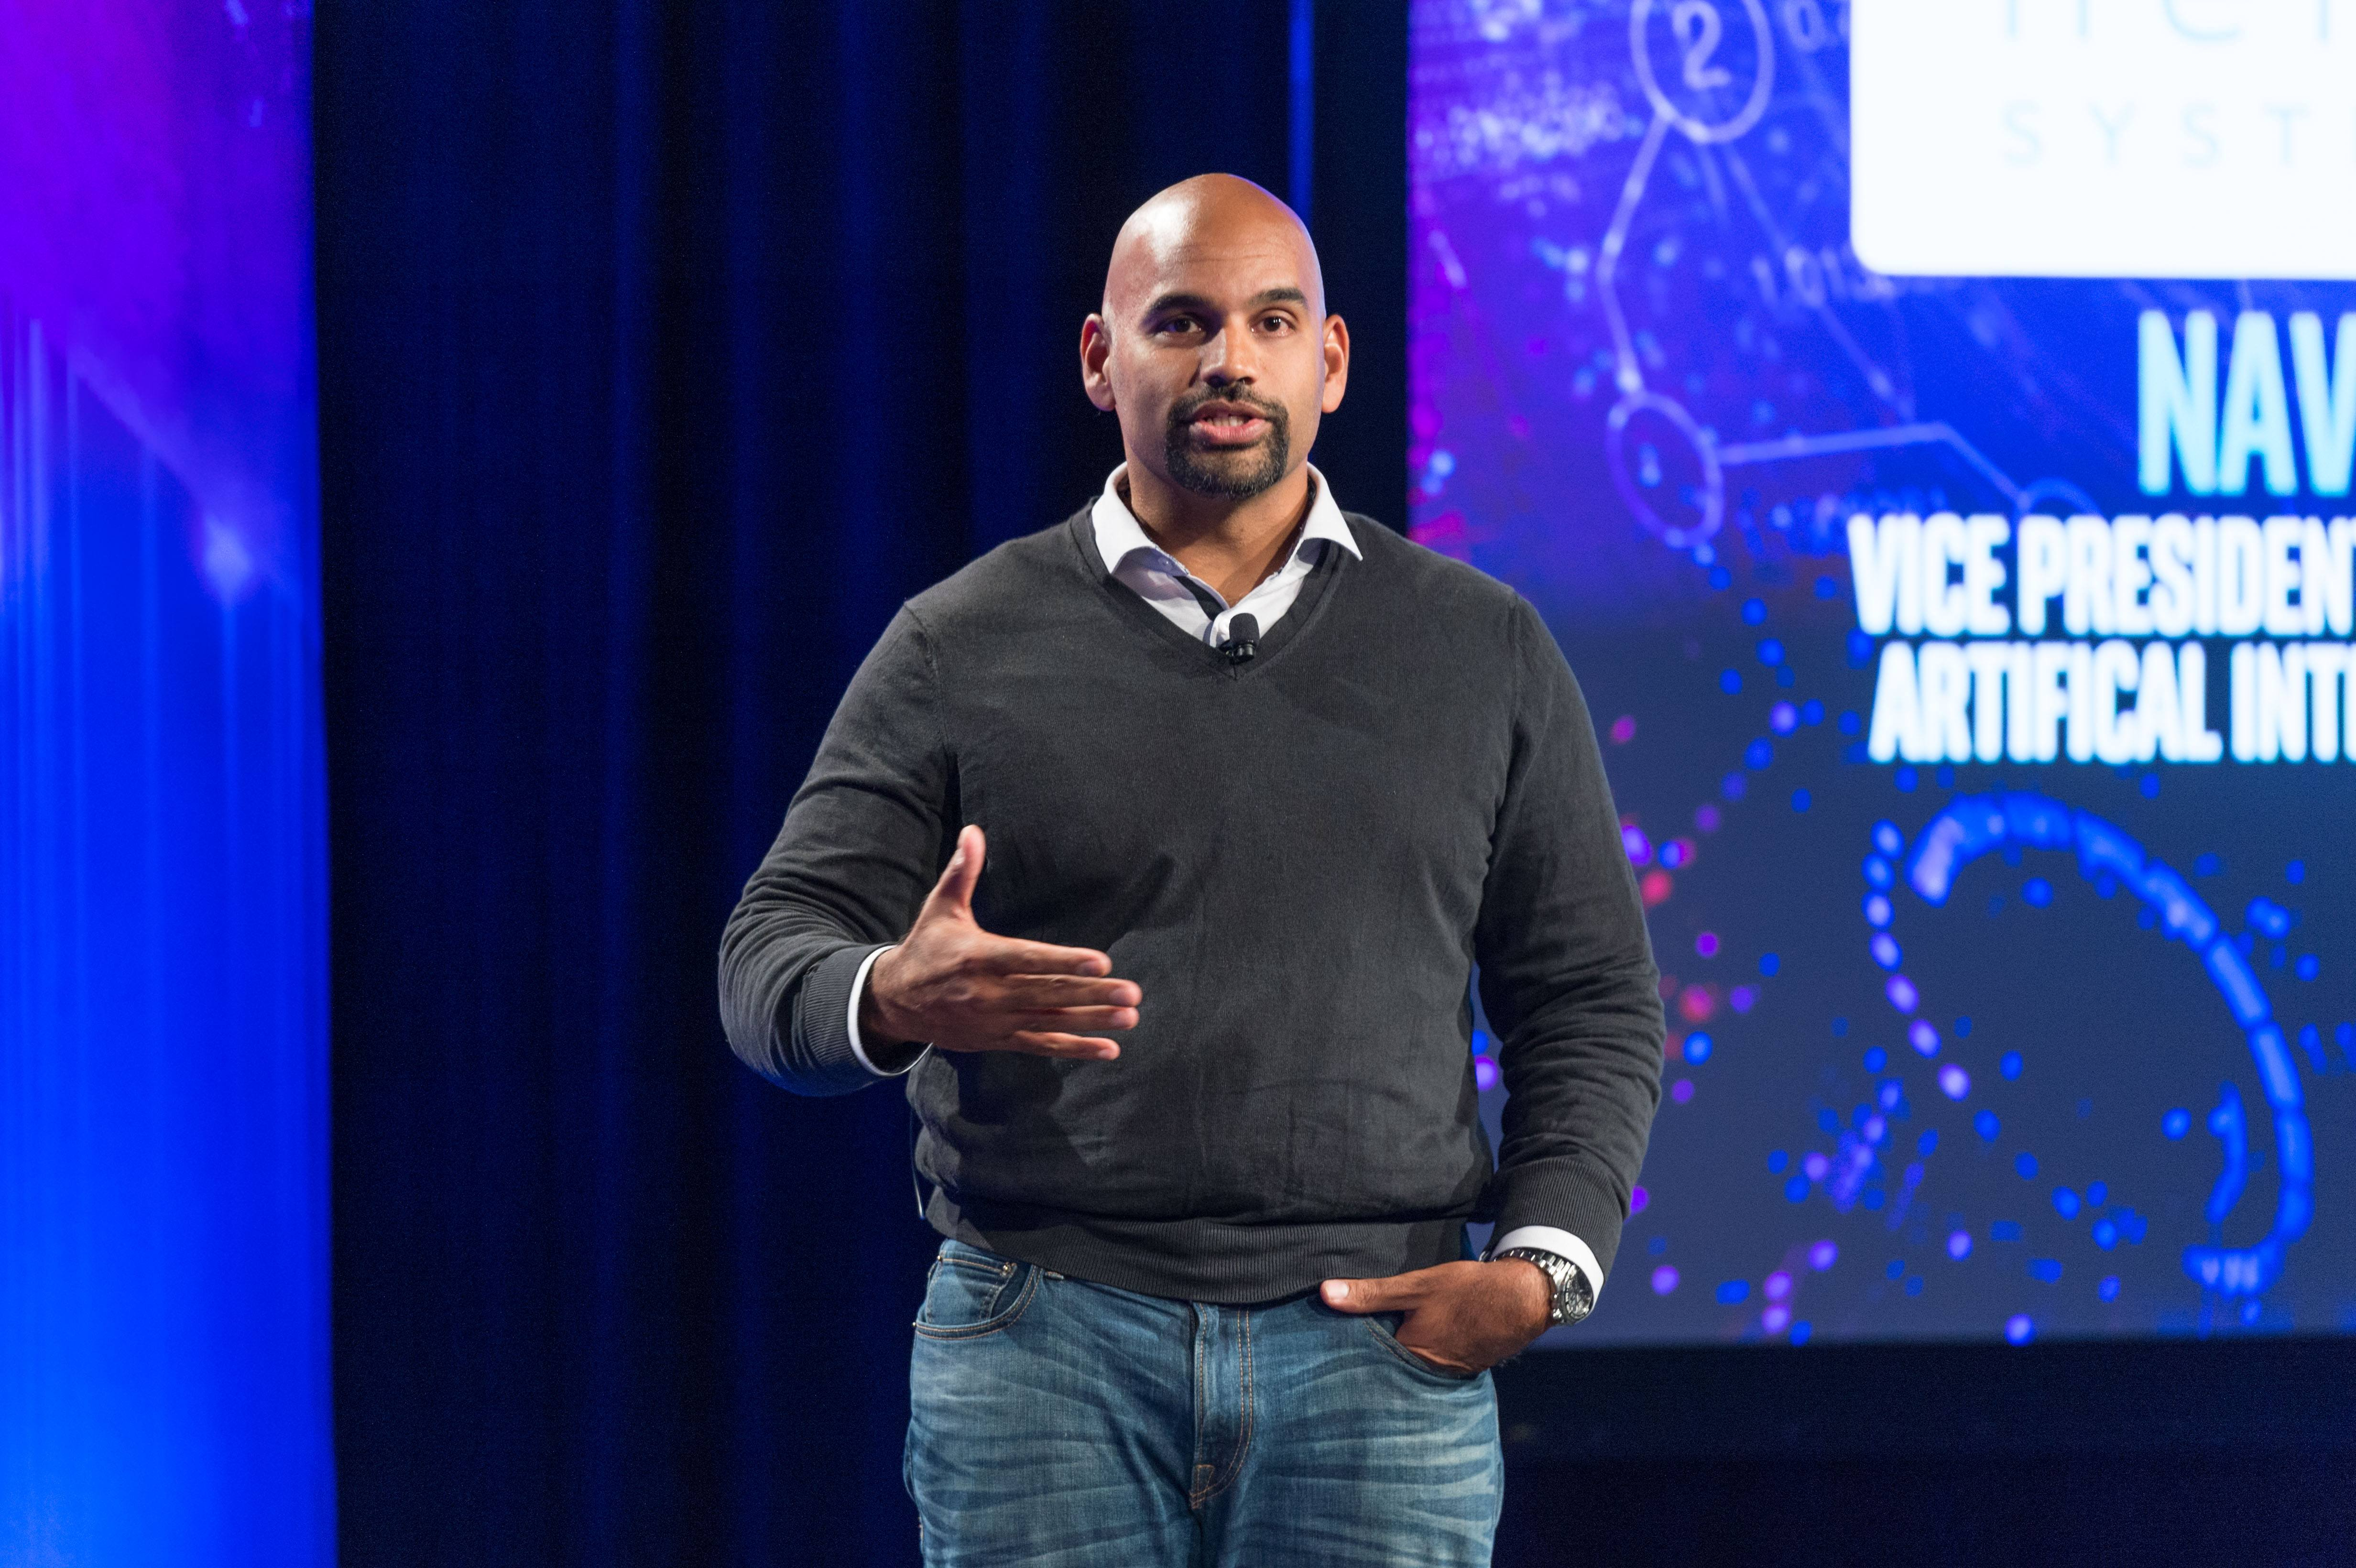 Intel vice president Naveen Rao discusses the future of the Nervana platform